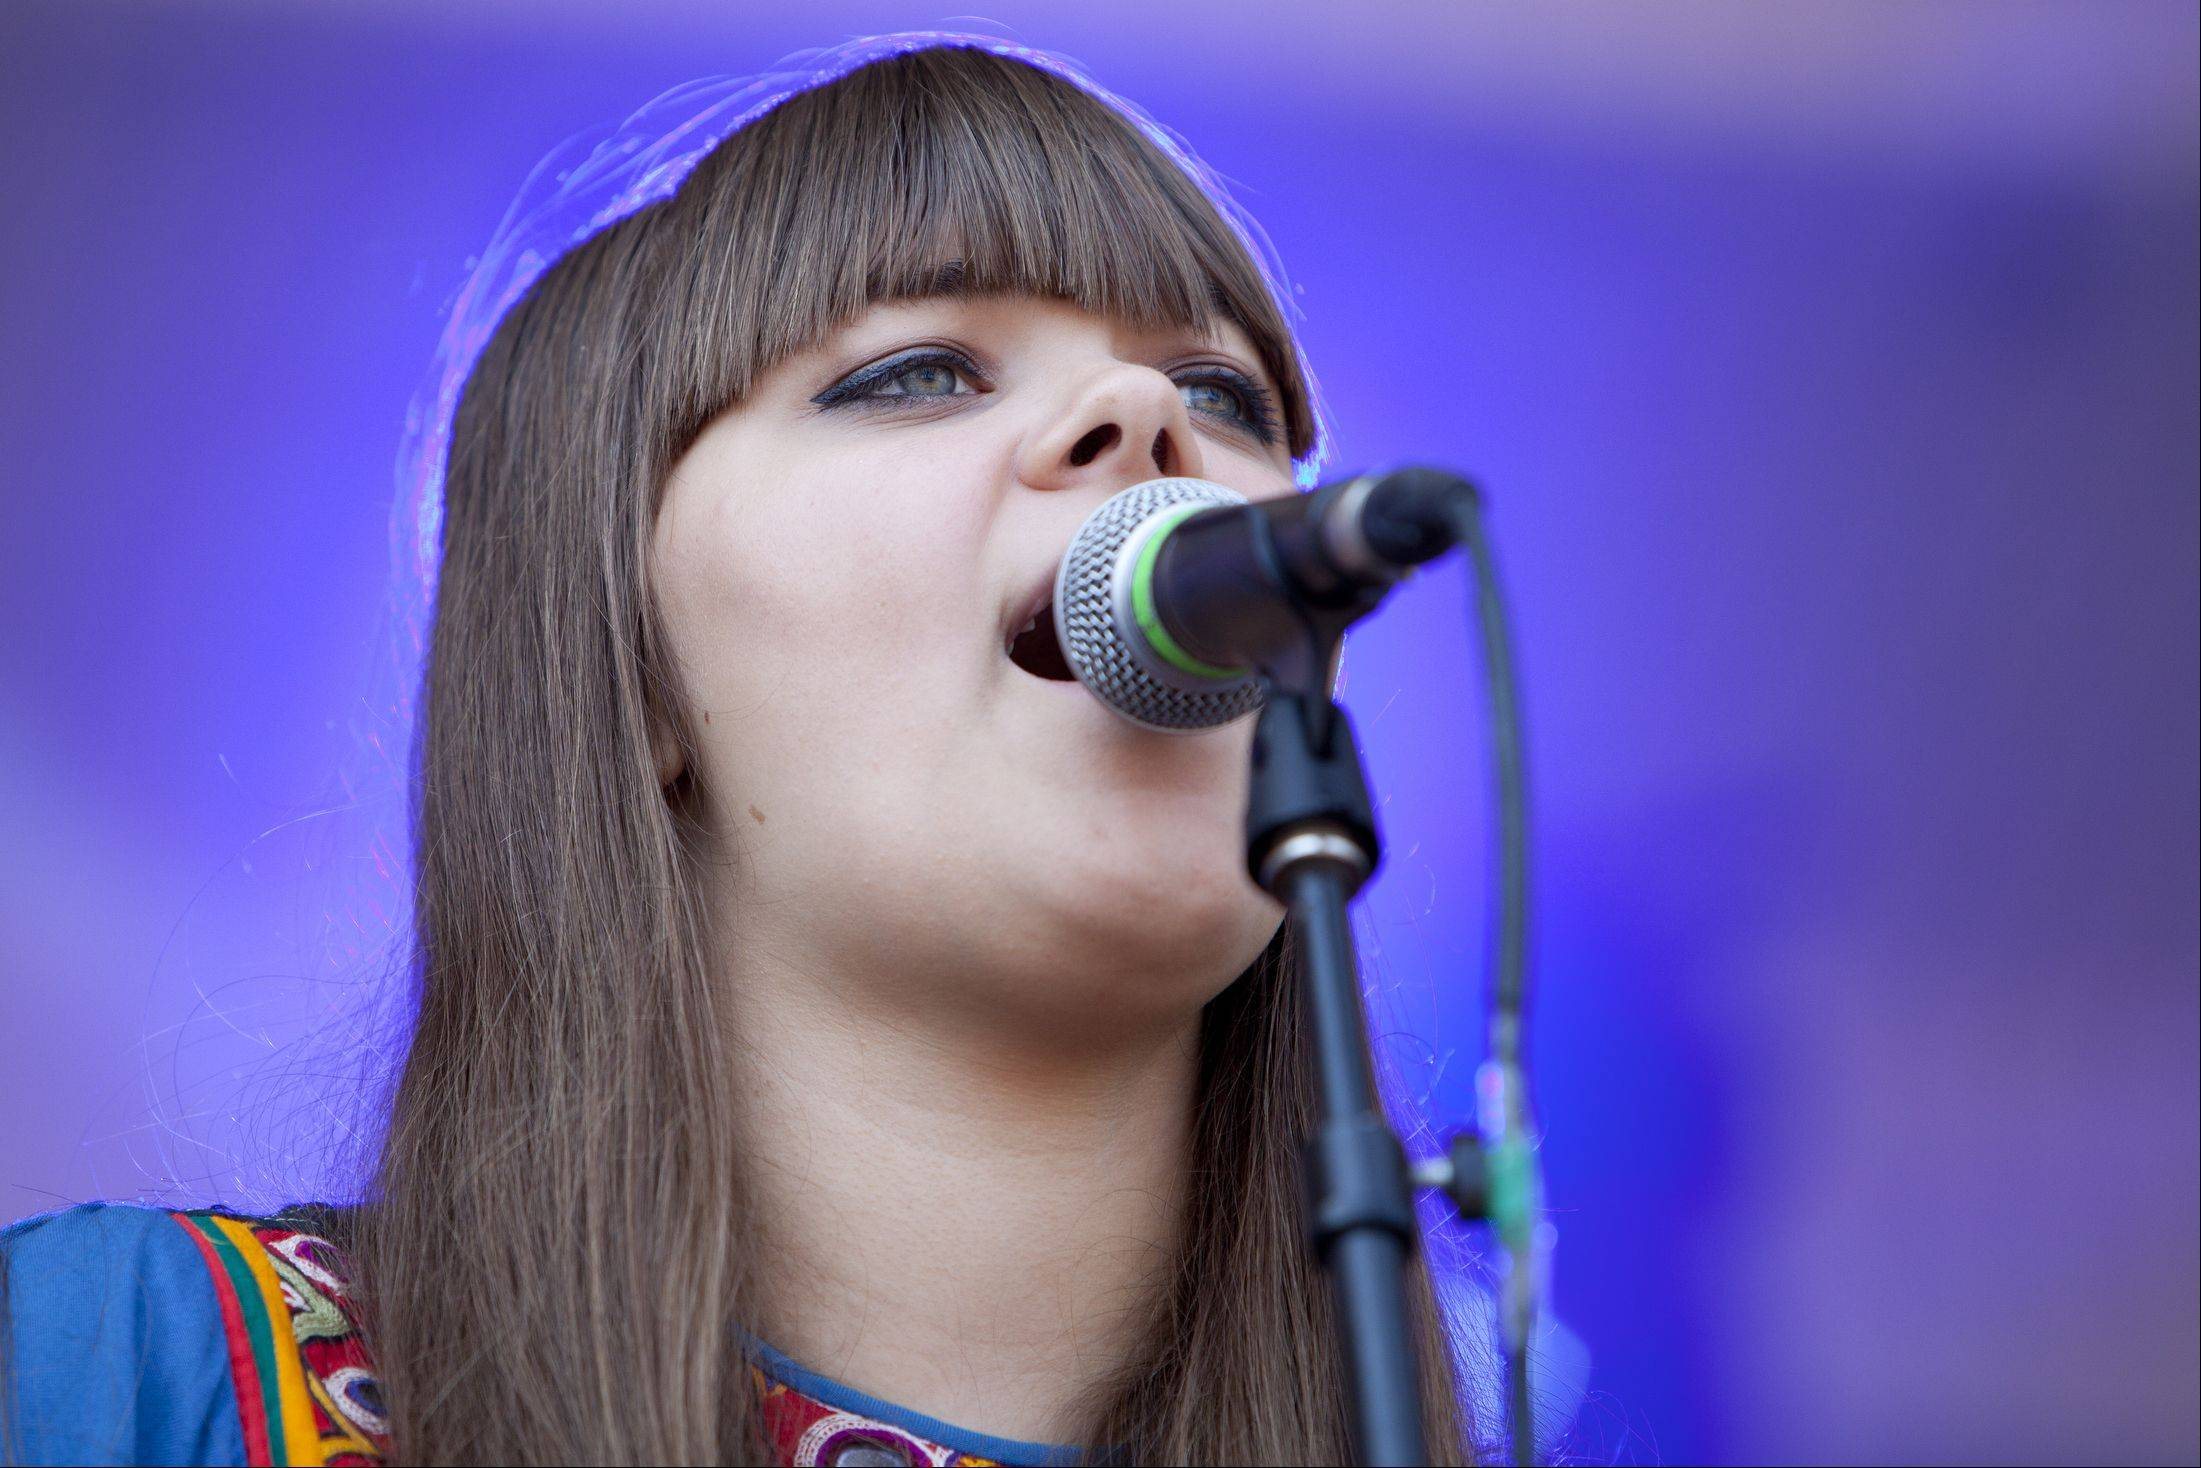 Klara Soderberg of the Swedish group First Aid Kit performs Friday at Lollapalooza.